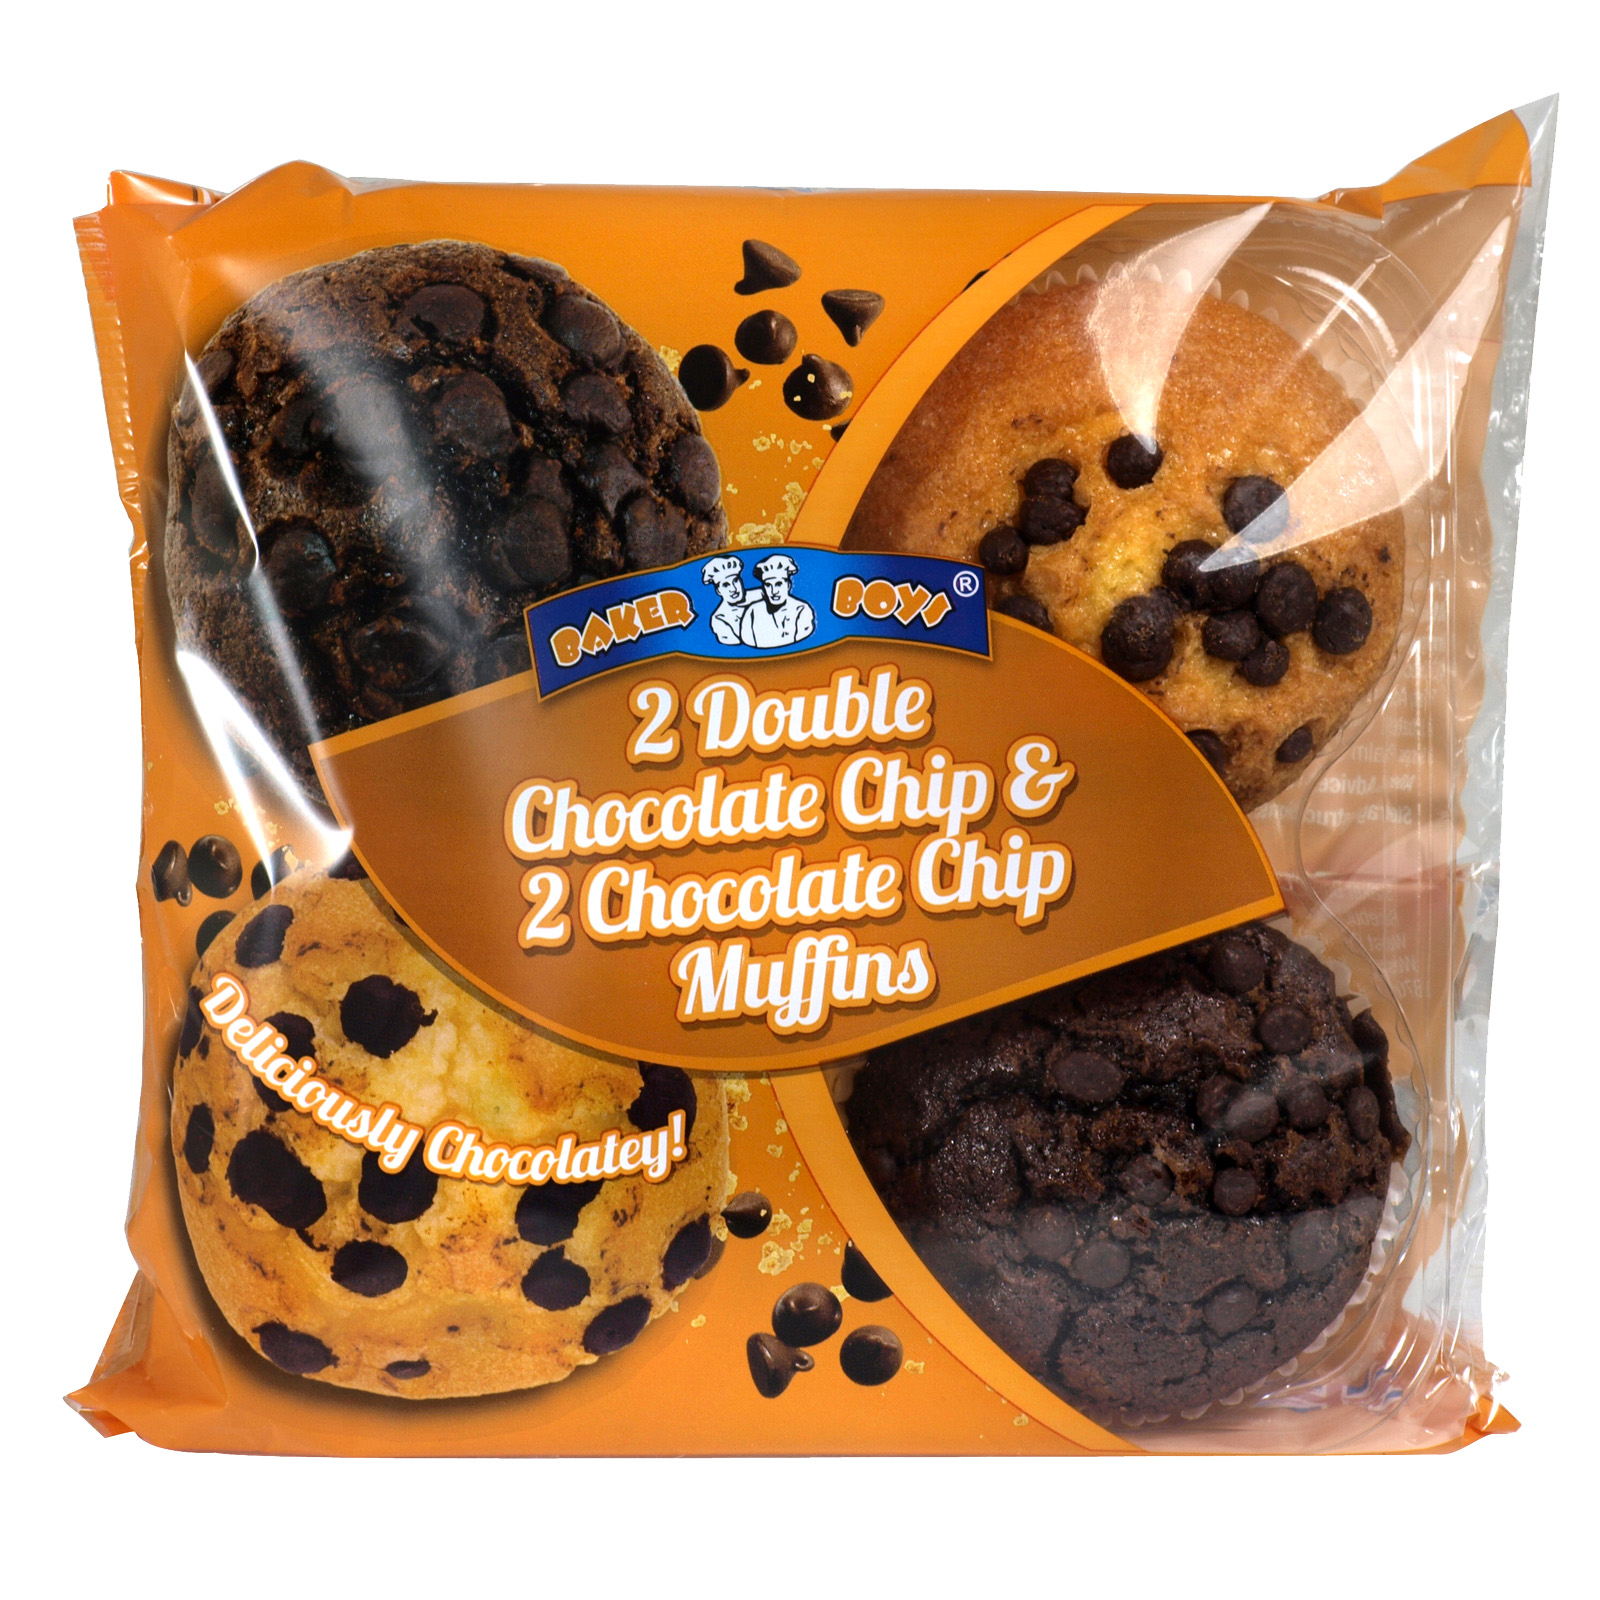 BAKER BOYS 4PK MUFFINS DOUBLE CHOCOLATE CHIP & CHOCOLATE CHIP X12